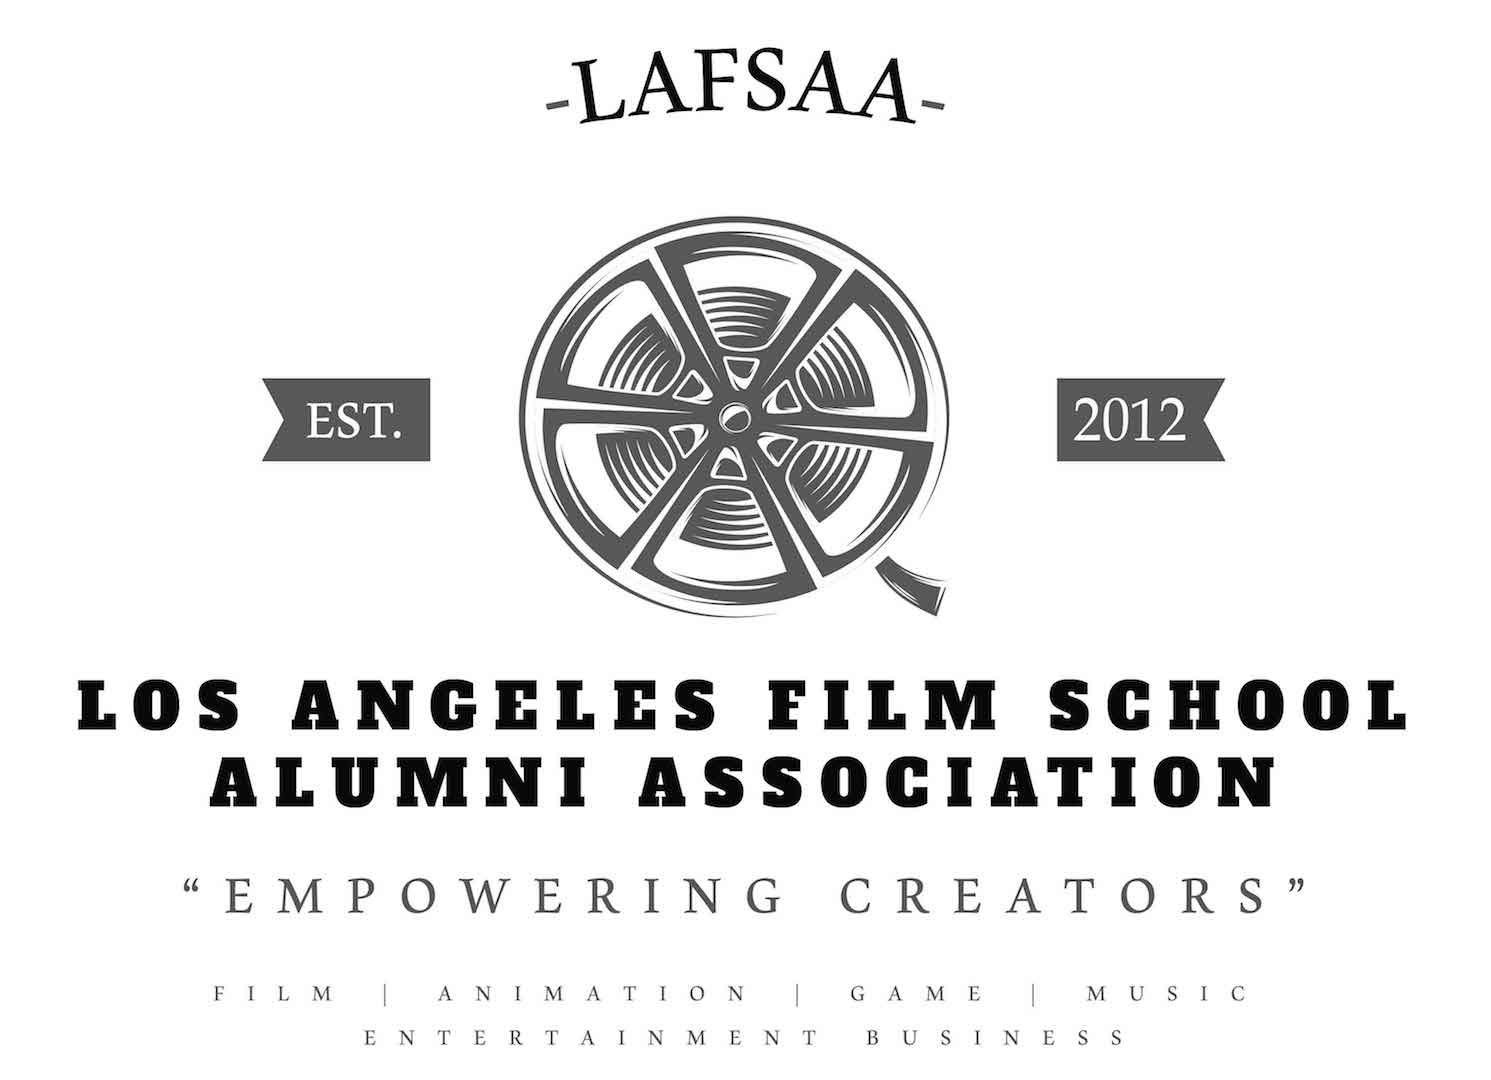 Los Angeles Film School Alumni Association